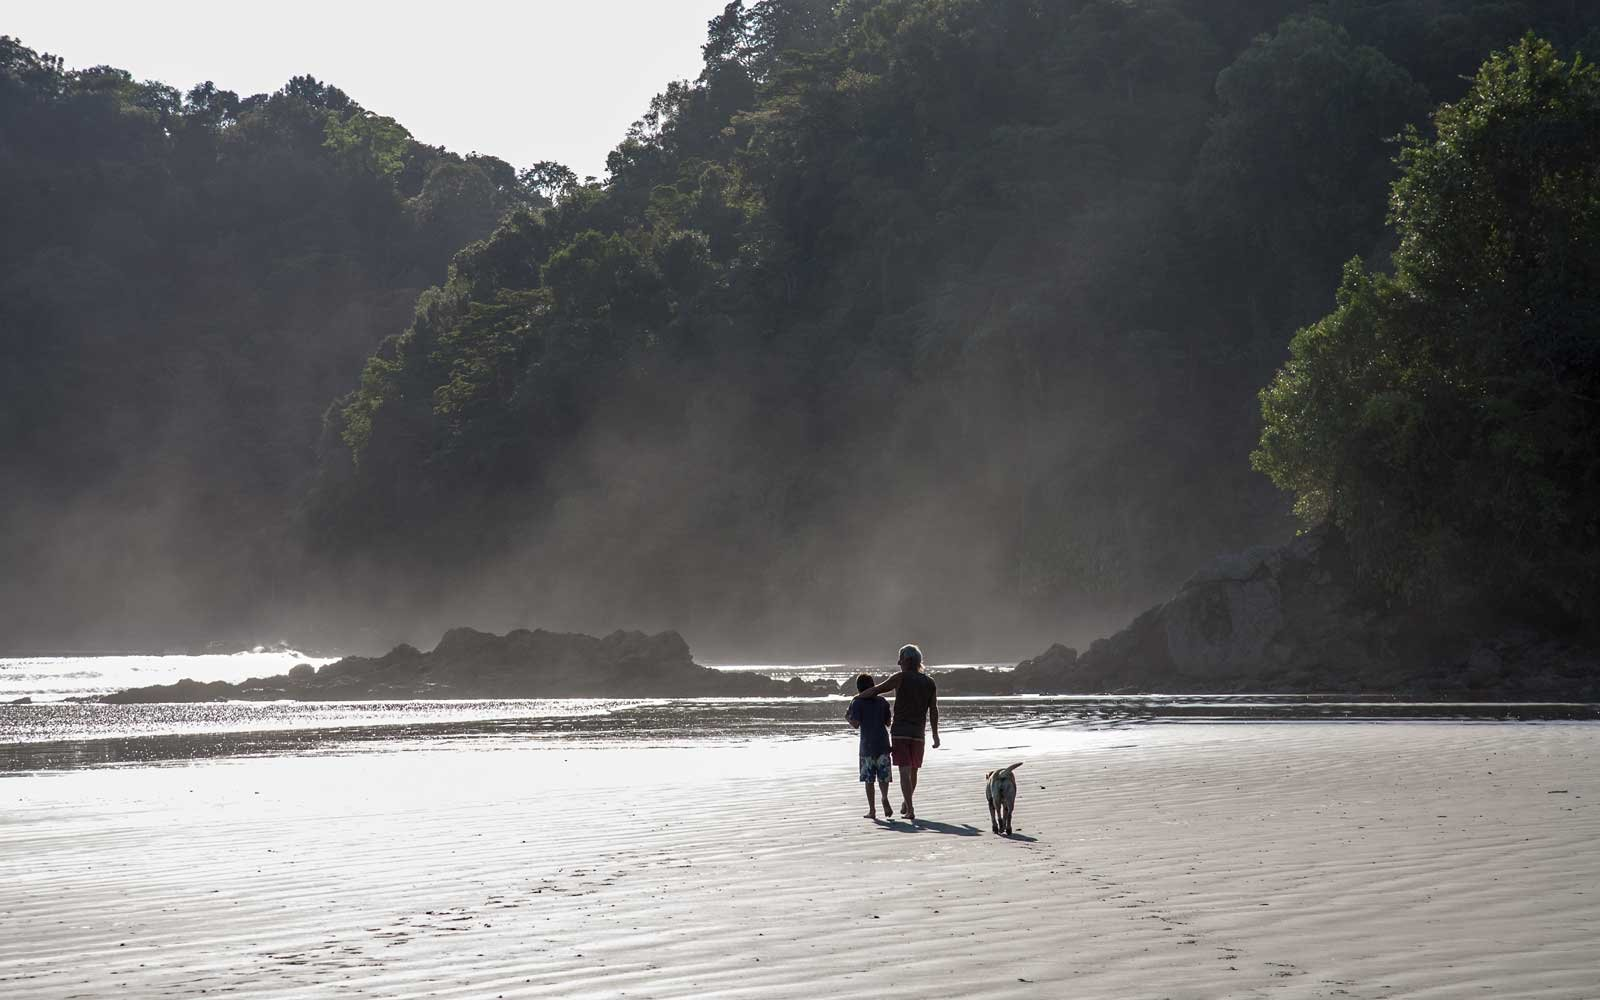 Father and son walking on the beach at sunset, Nuqui Beach, Colombia